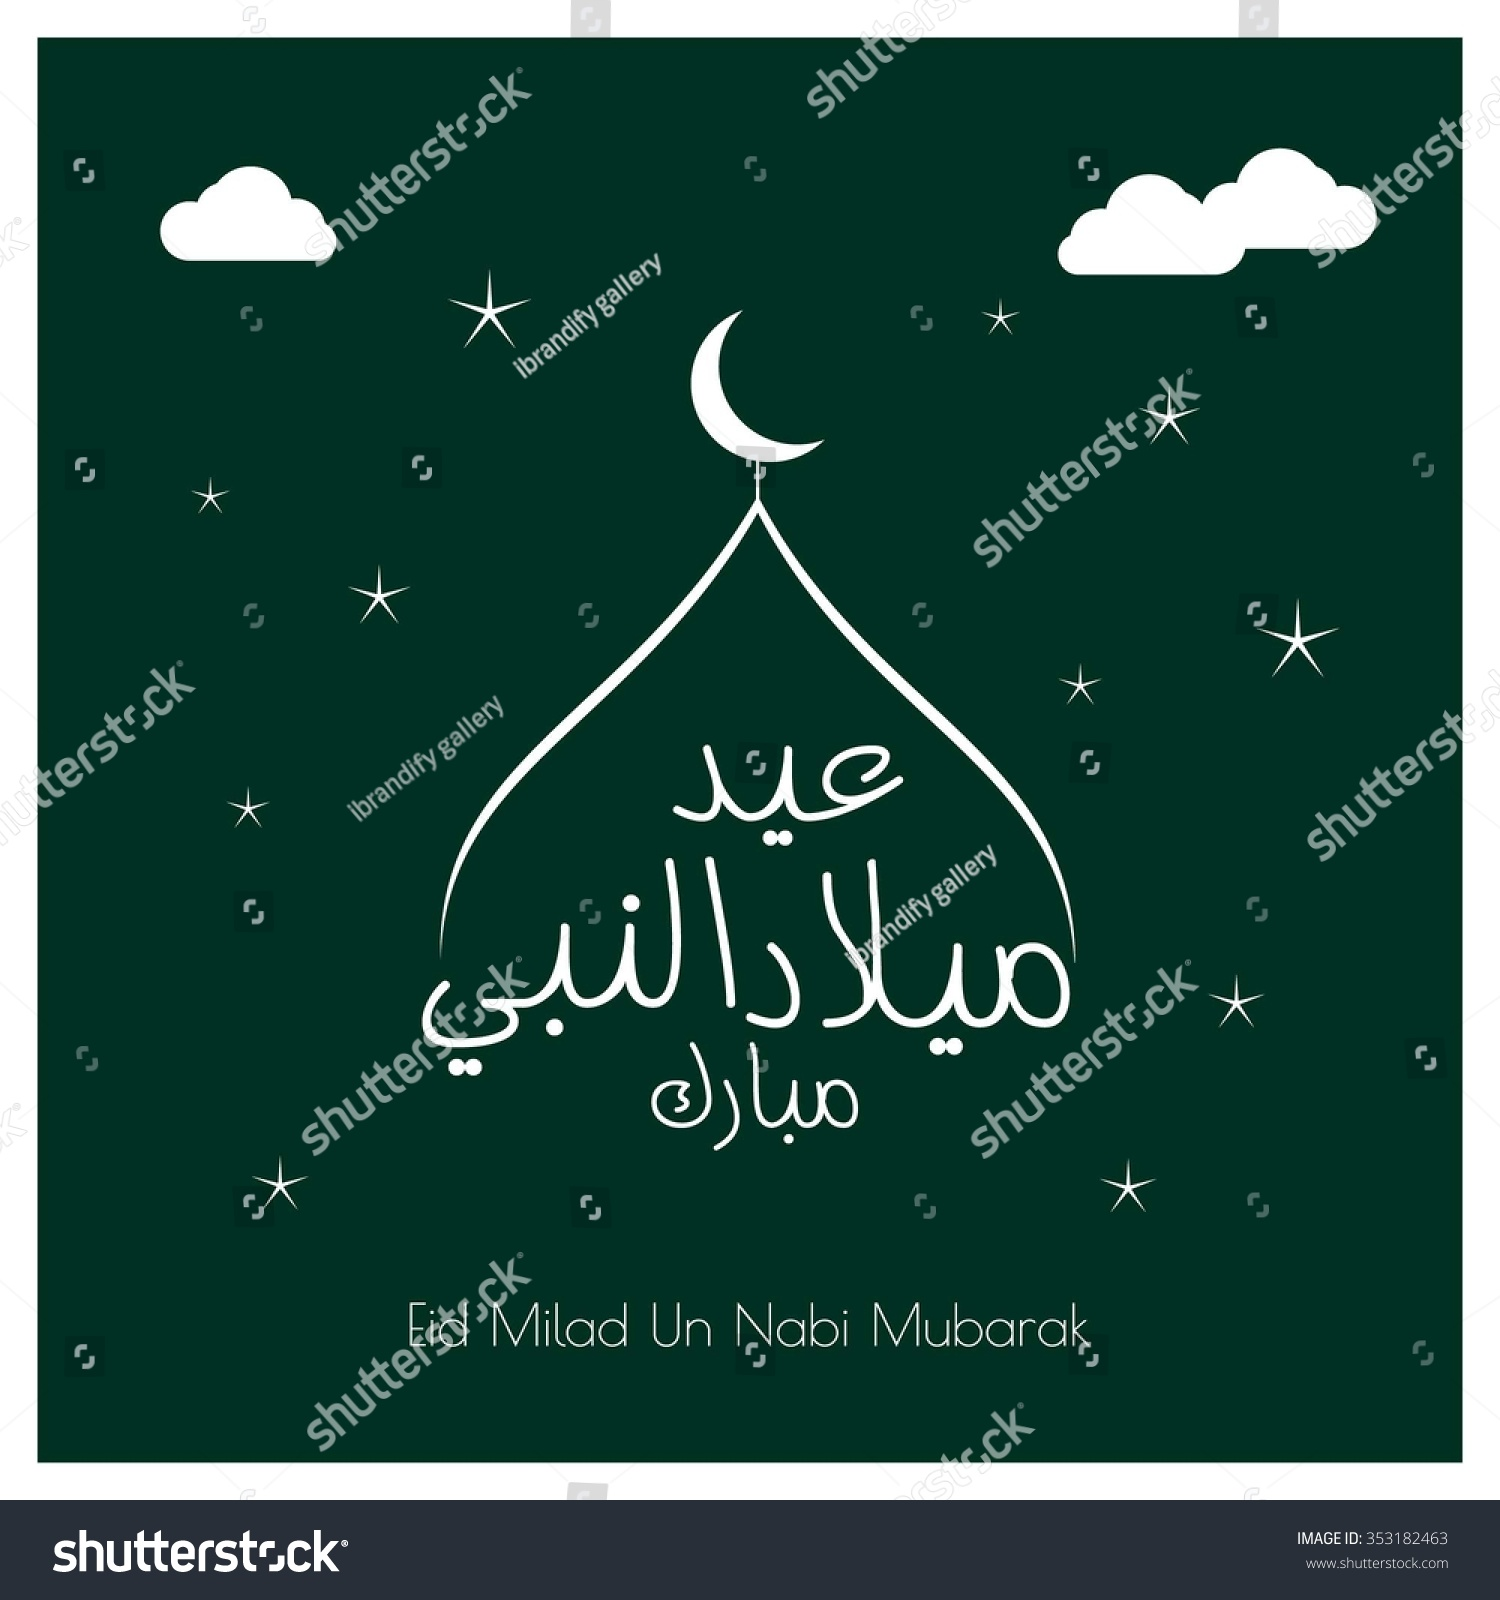 Cool Milad Eid Al-Fitr Decorations - stock-vector-arabic-islamic-calligraphy-of-text-eid-milad-un-nabi-for-muslim-community-festival-milad-353182463  Best Photo Reference_12489 .jpg